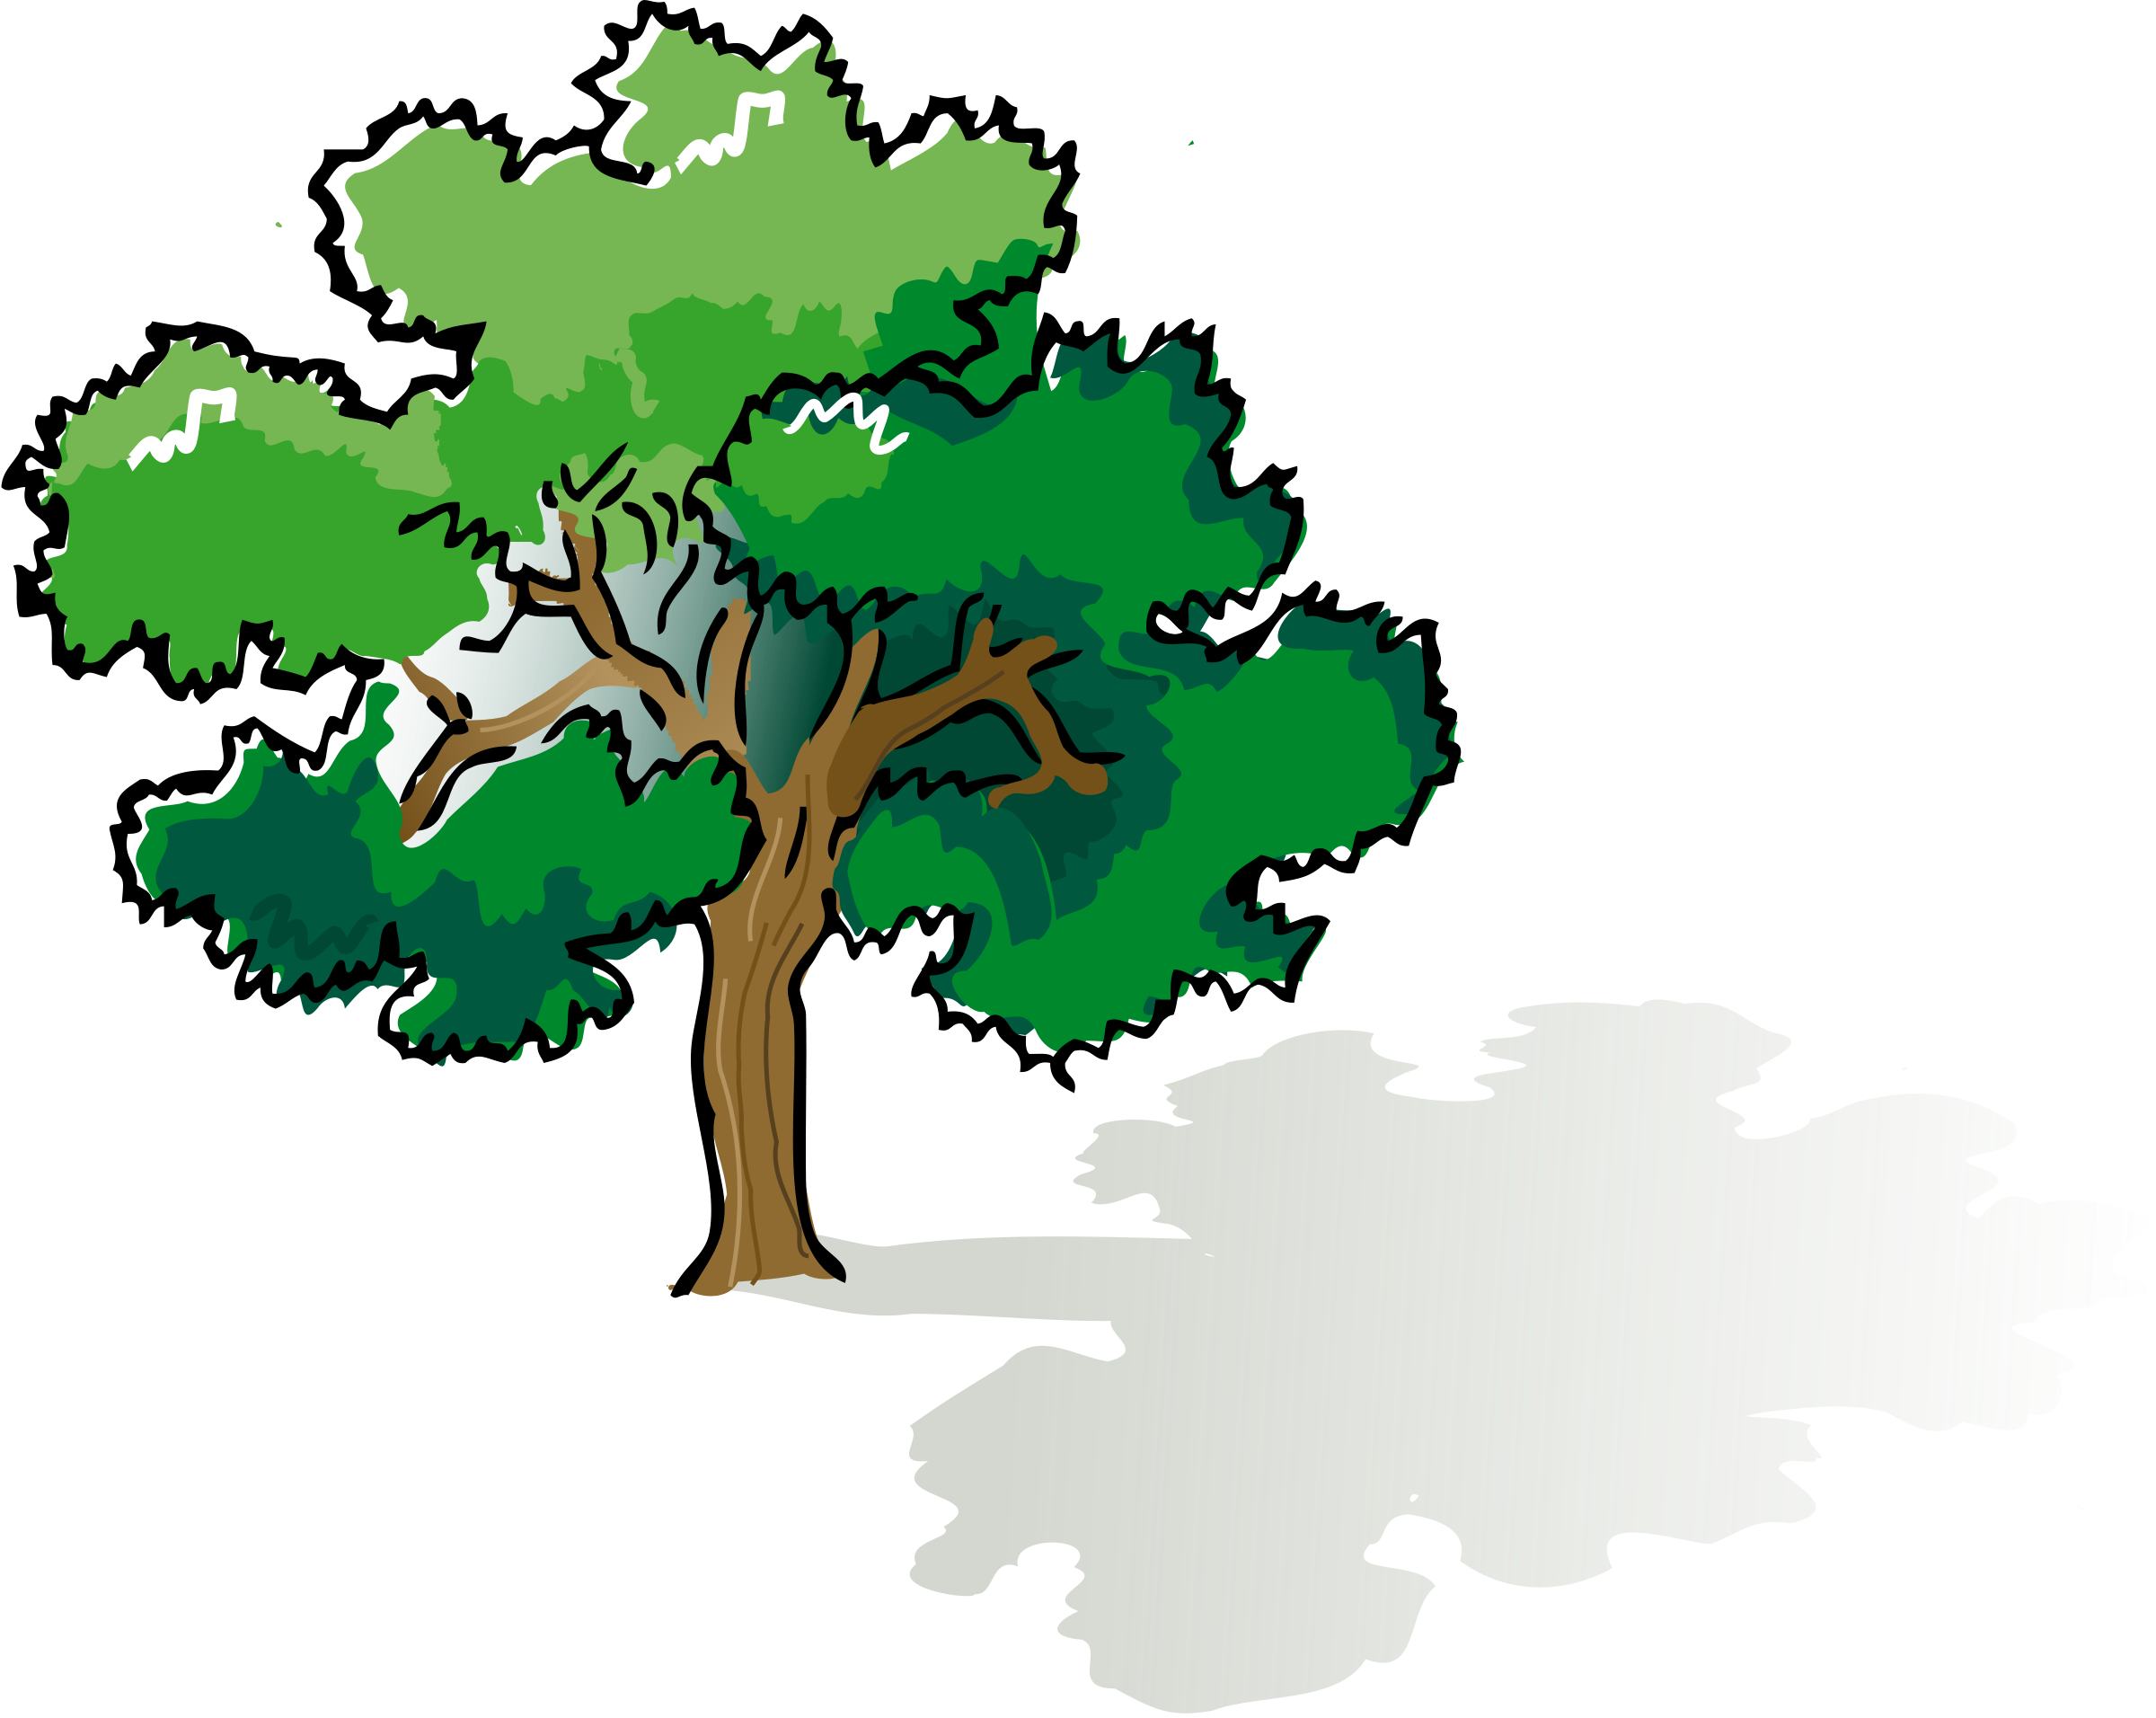 Clipart image of a moon chestnut tree clipart royalty free download Free Chestnut Tree Cliparts, Download Free Clip Art, Free Clip Art ... clipart royalty free download